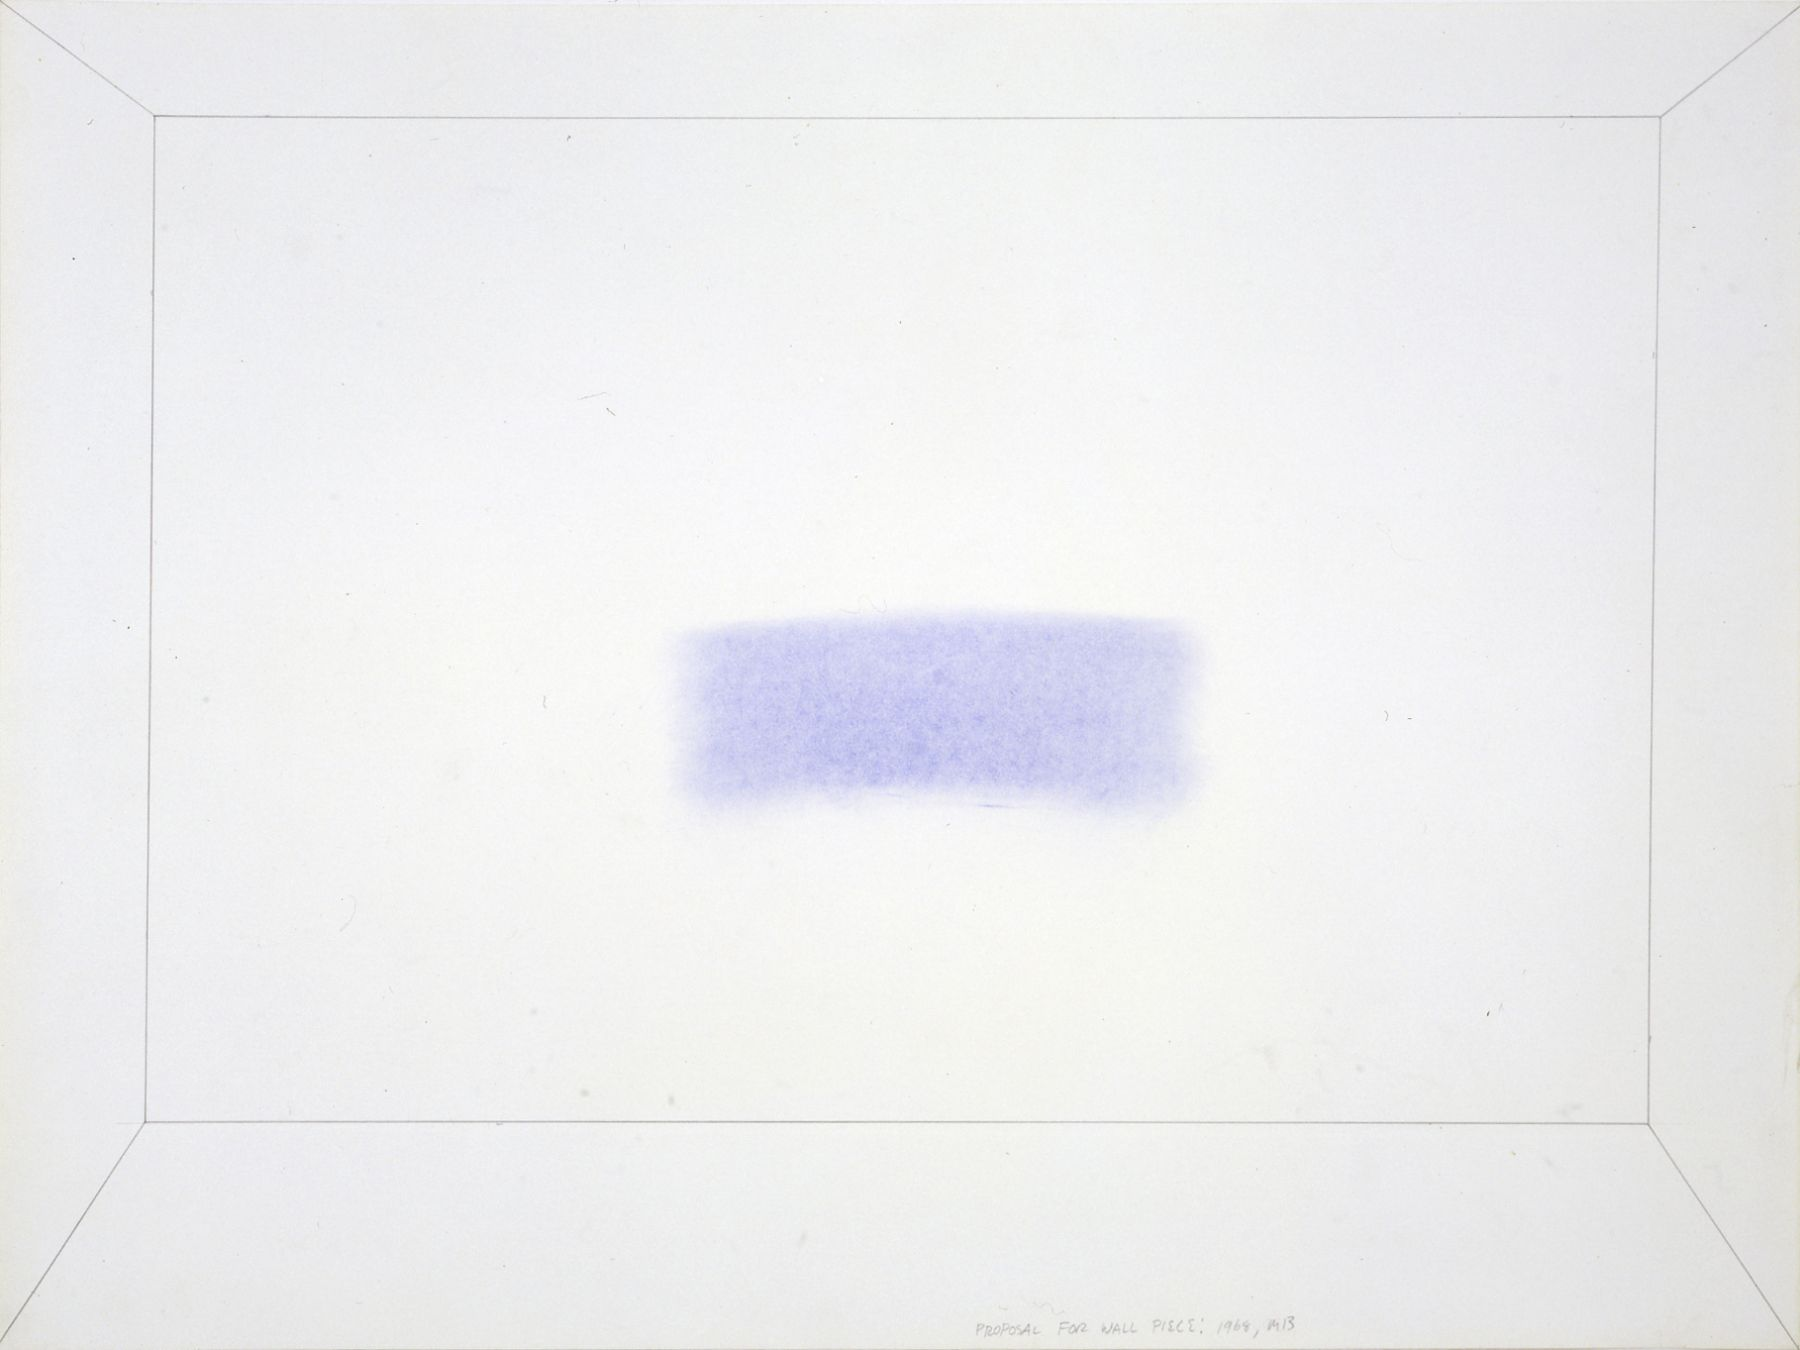 Mel Bochner,Proposal for Wall Piece: Smudge,1968.